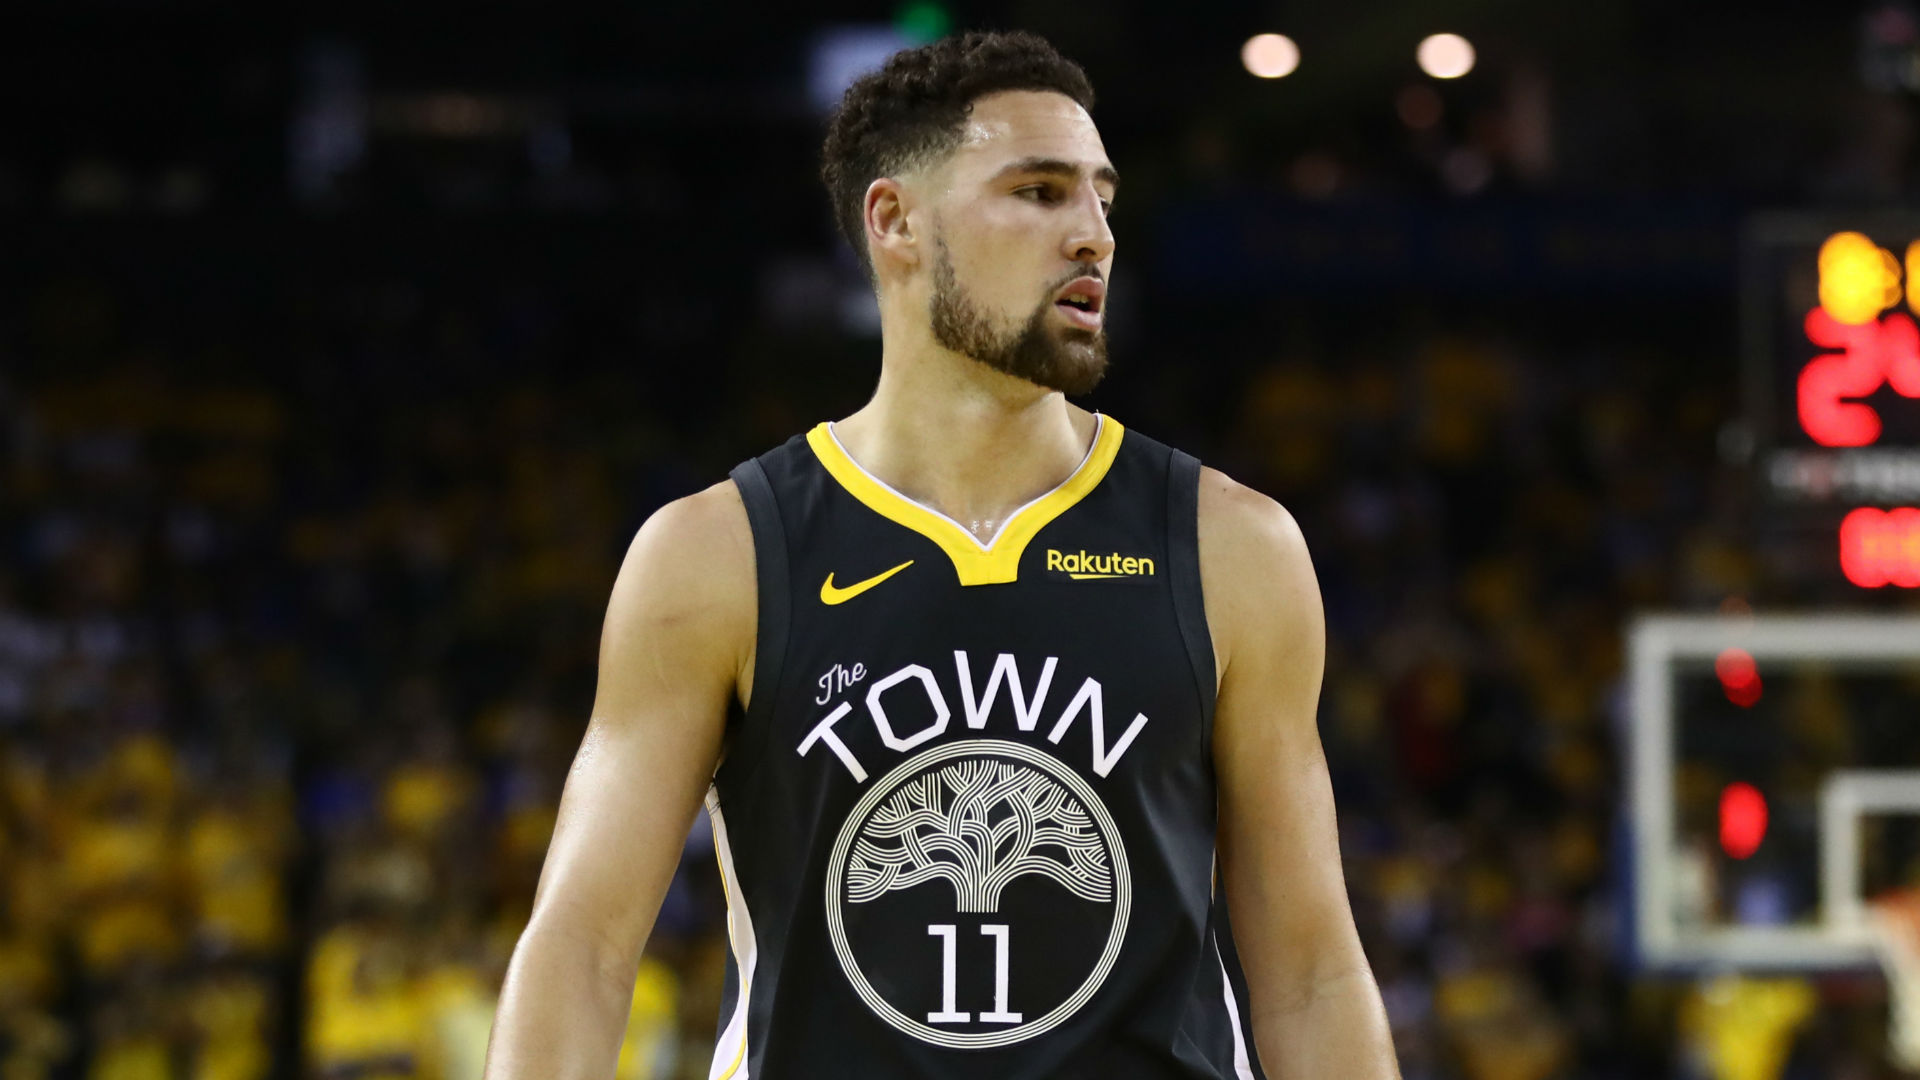 Golden State Warriors star Klay Thompson suffered a torn ACL back in June and is looking forward to the day he returns to action.